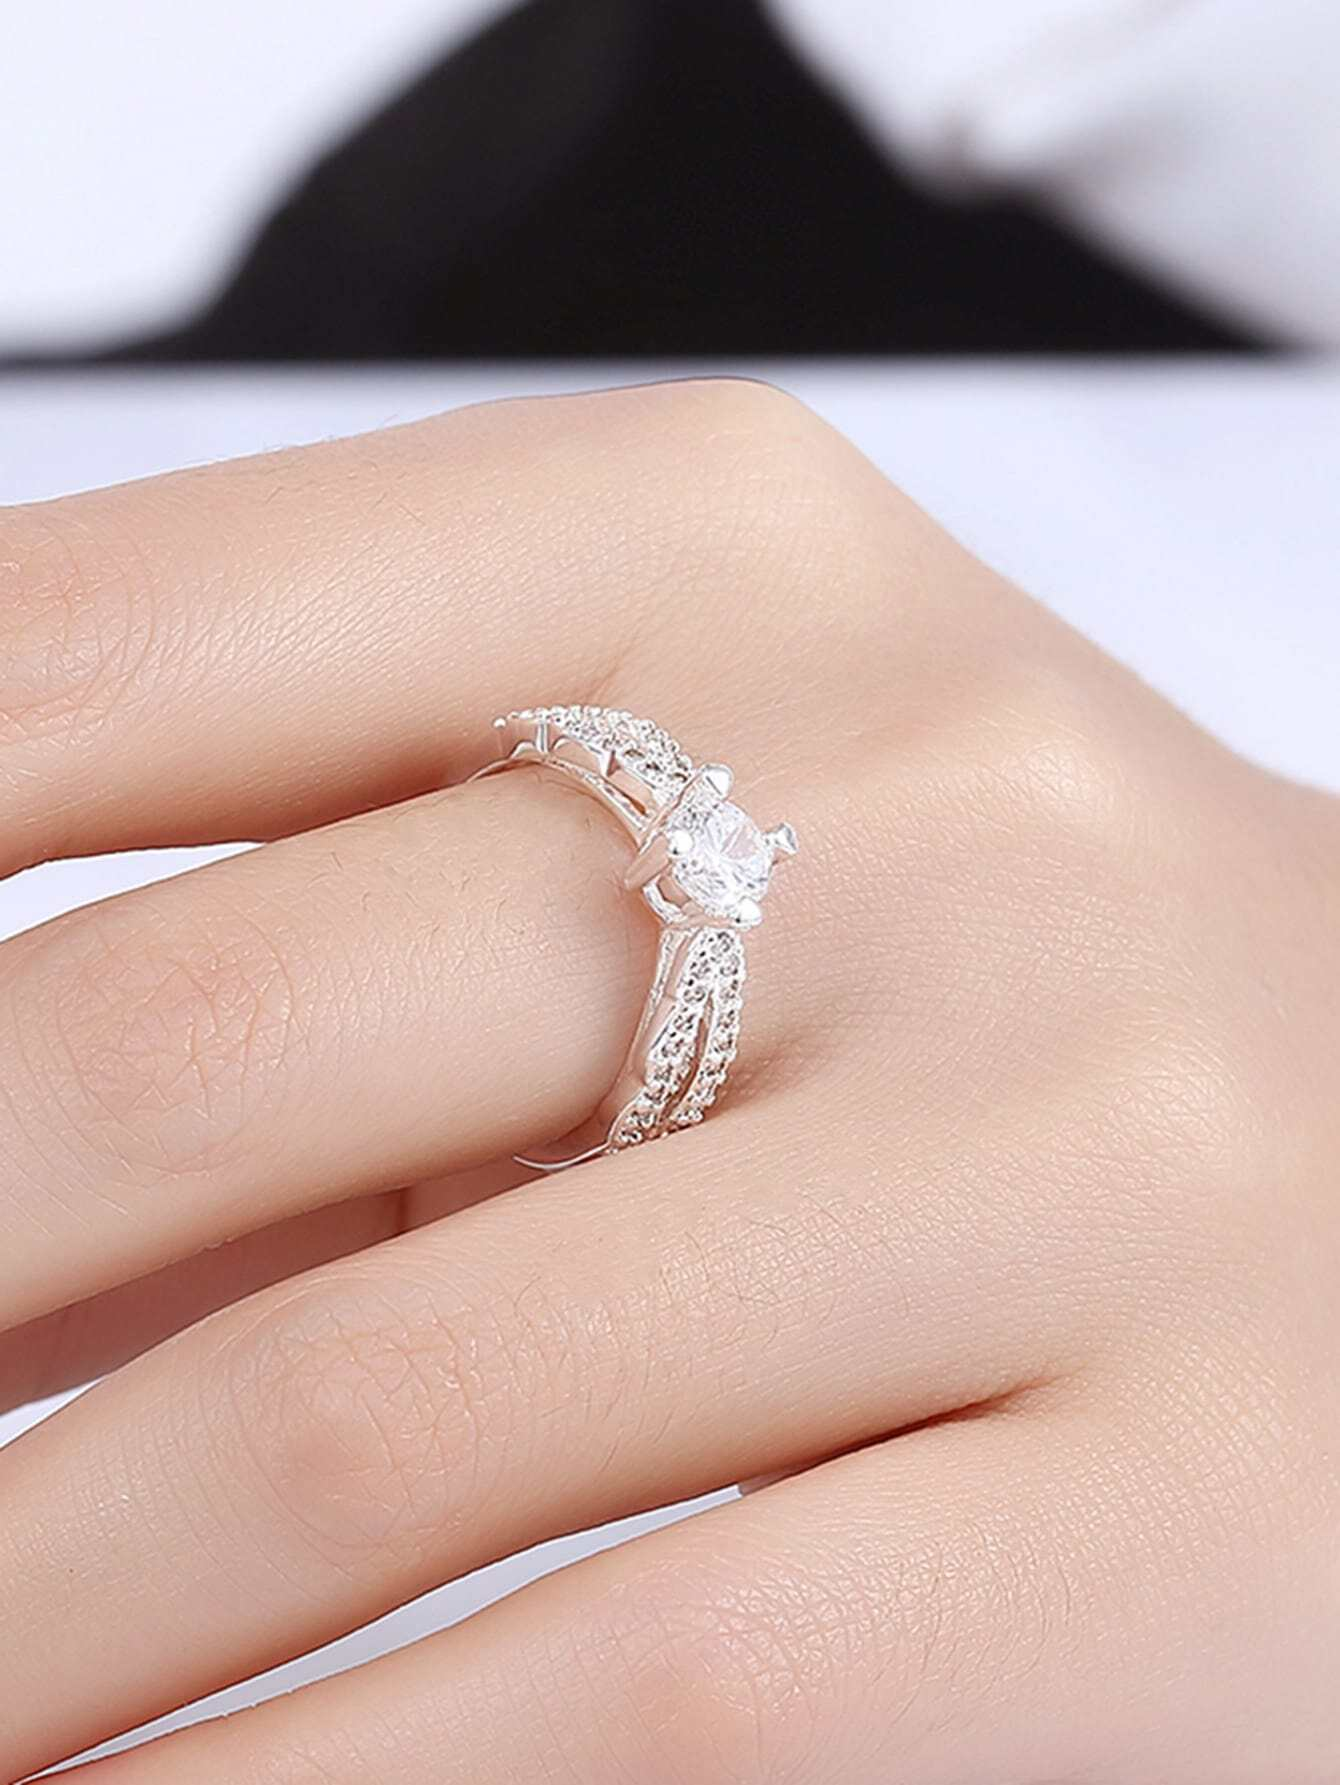 Faux Diamond Decorated Delicate Ring EmmaCloth-Women Fast Fashion Online